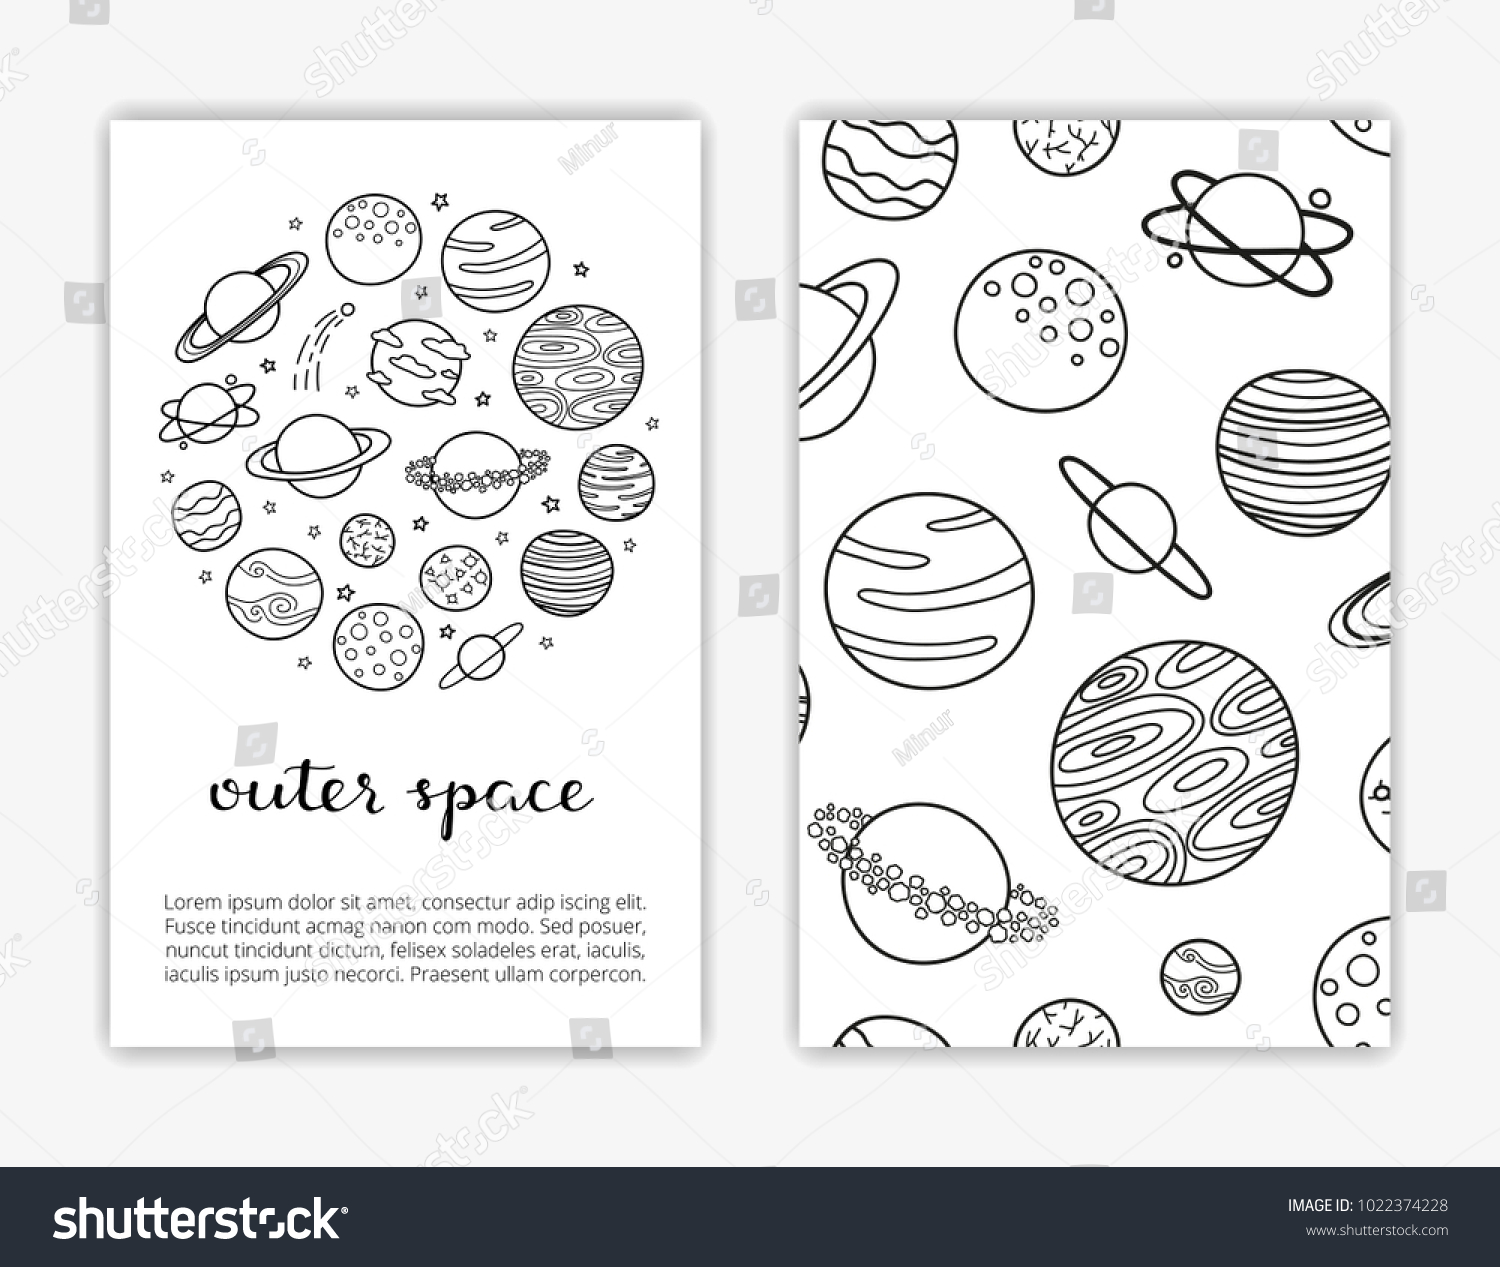 Card Templates Doodle Outline Fantastic Space Stock Vector ...